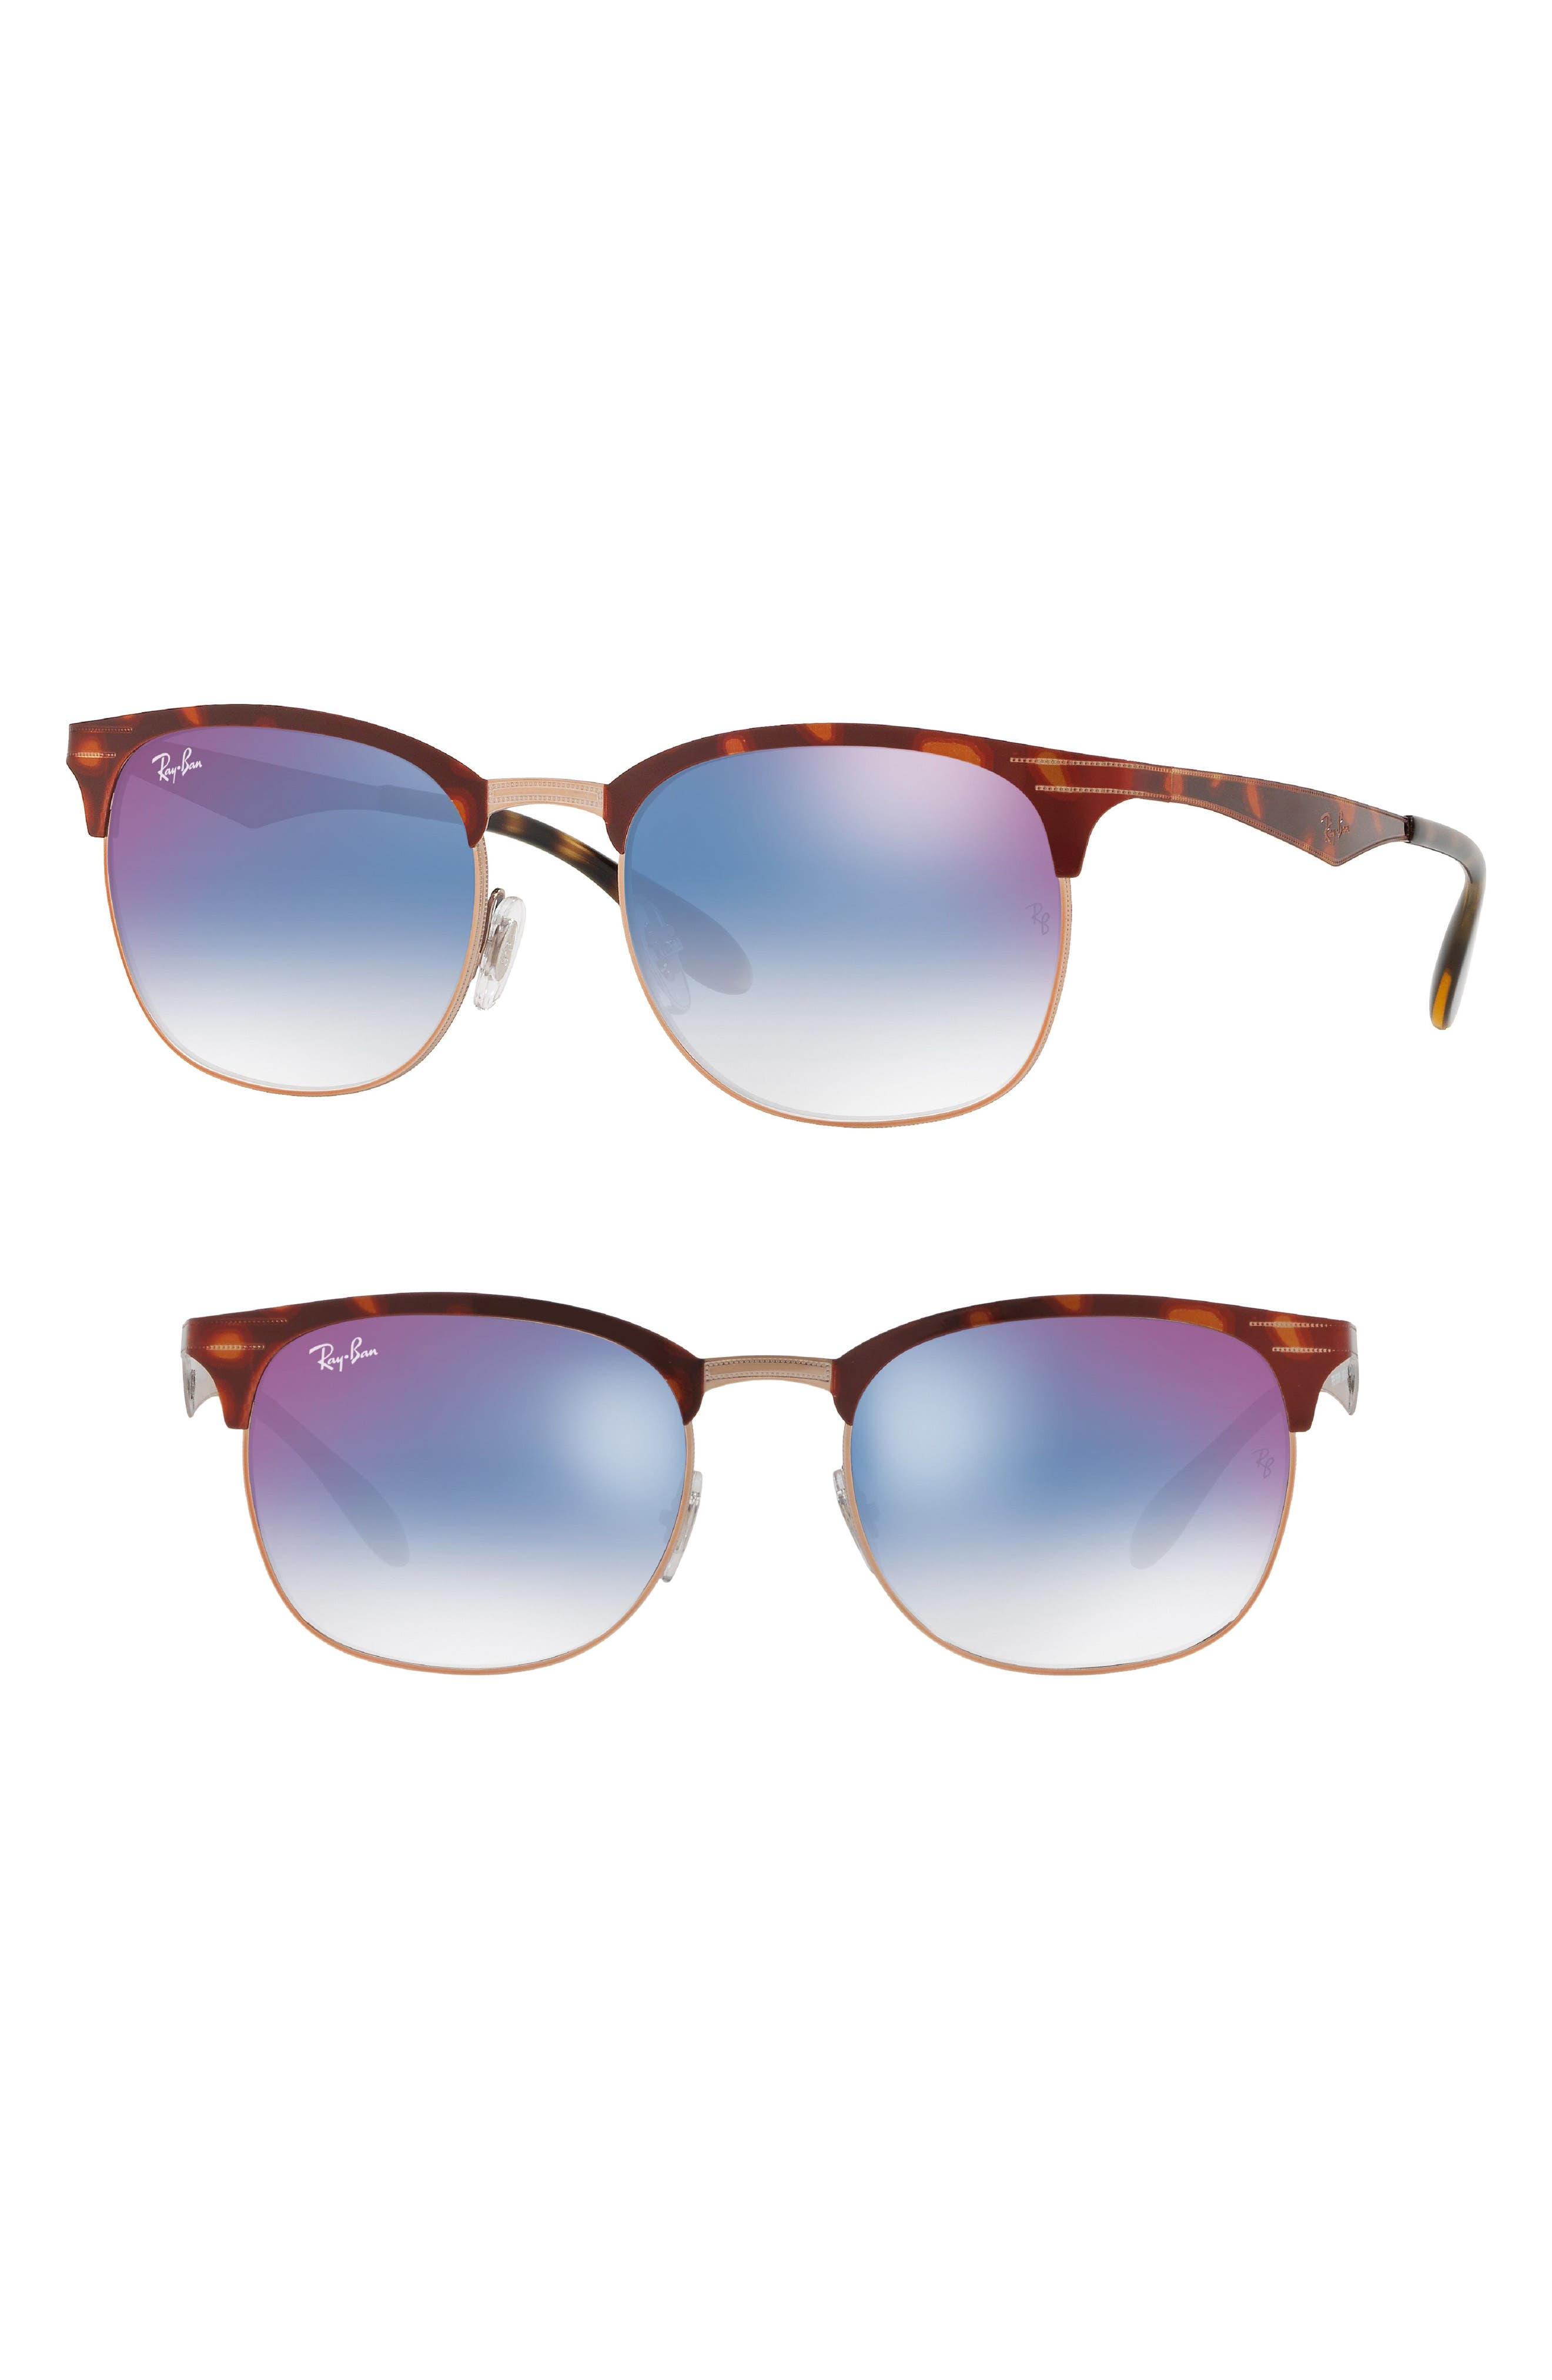 Highstreet 53mm Clubmaster Sunglasses,                         Main,                         color, Red Gradient Mirror